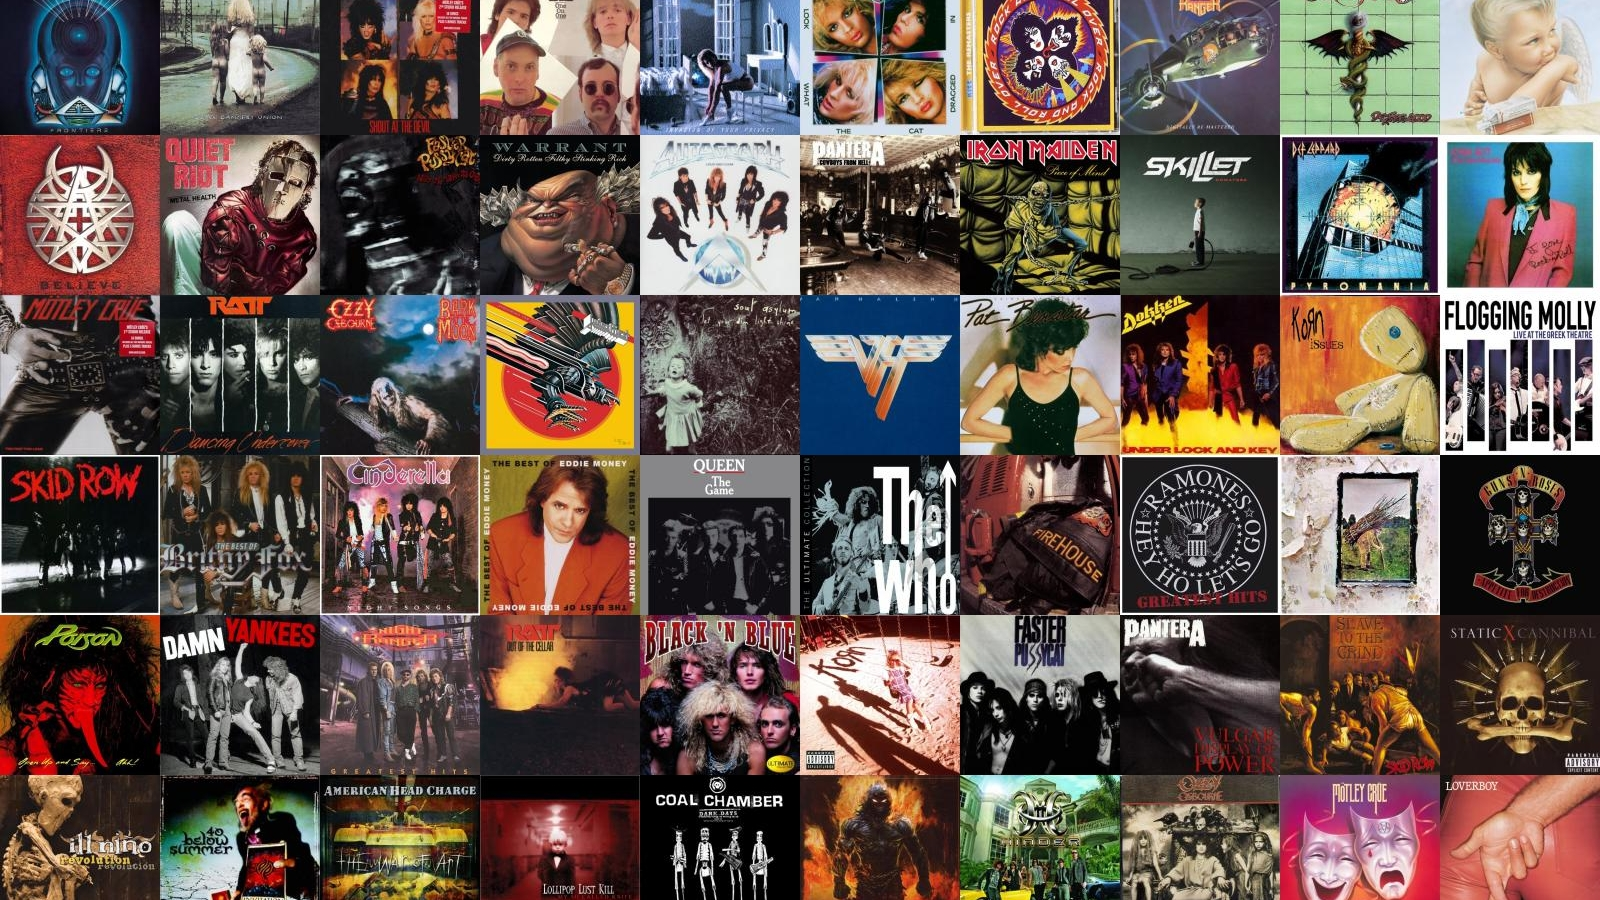 Classic Rock Album Covers Wallpaper Collage 2984333 Hd Wallpaper Backgrounds Download